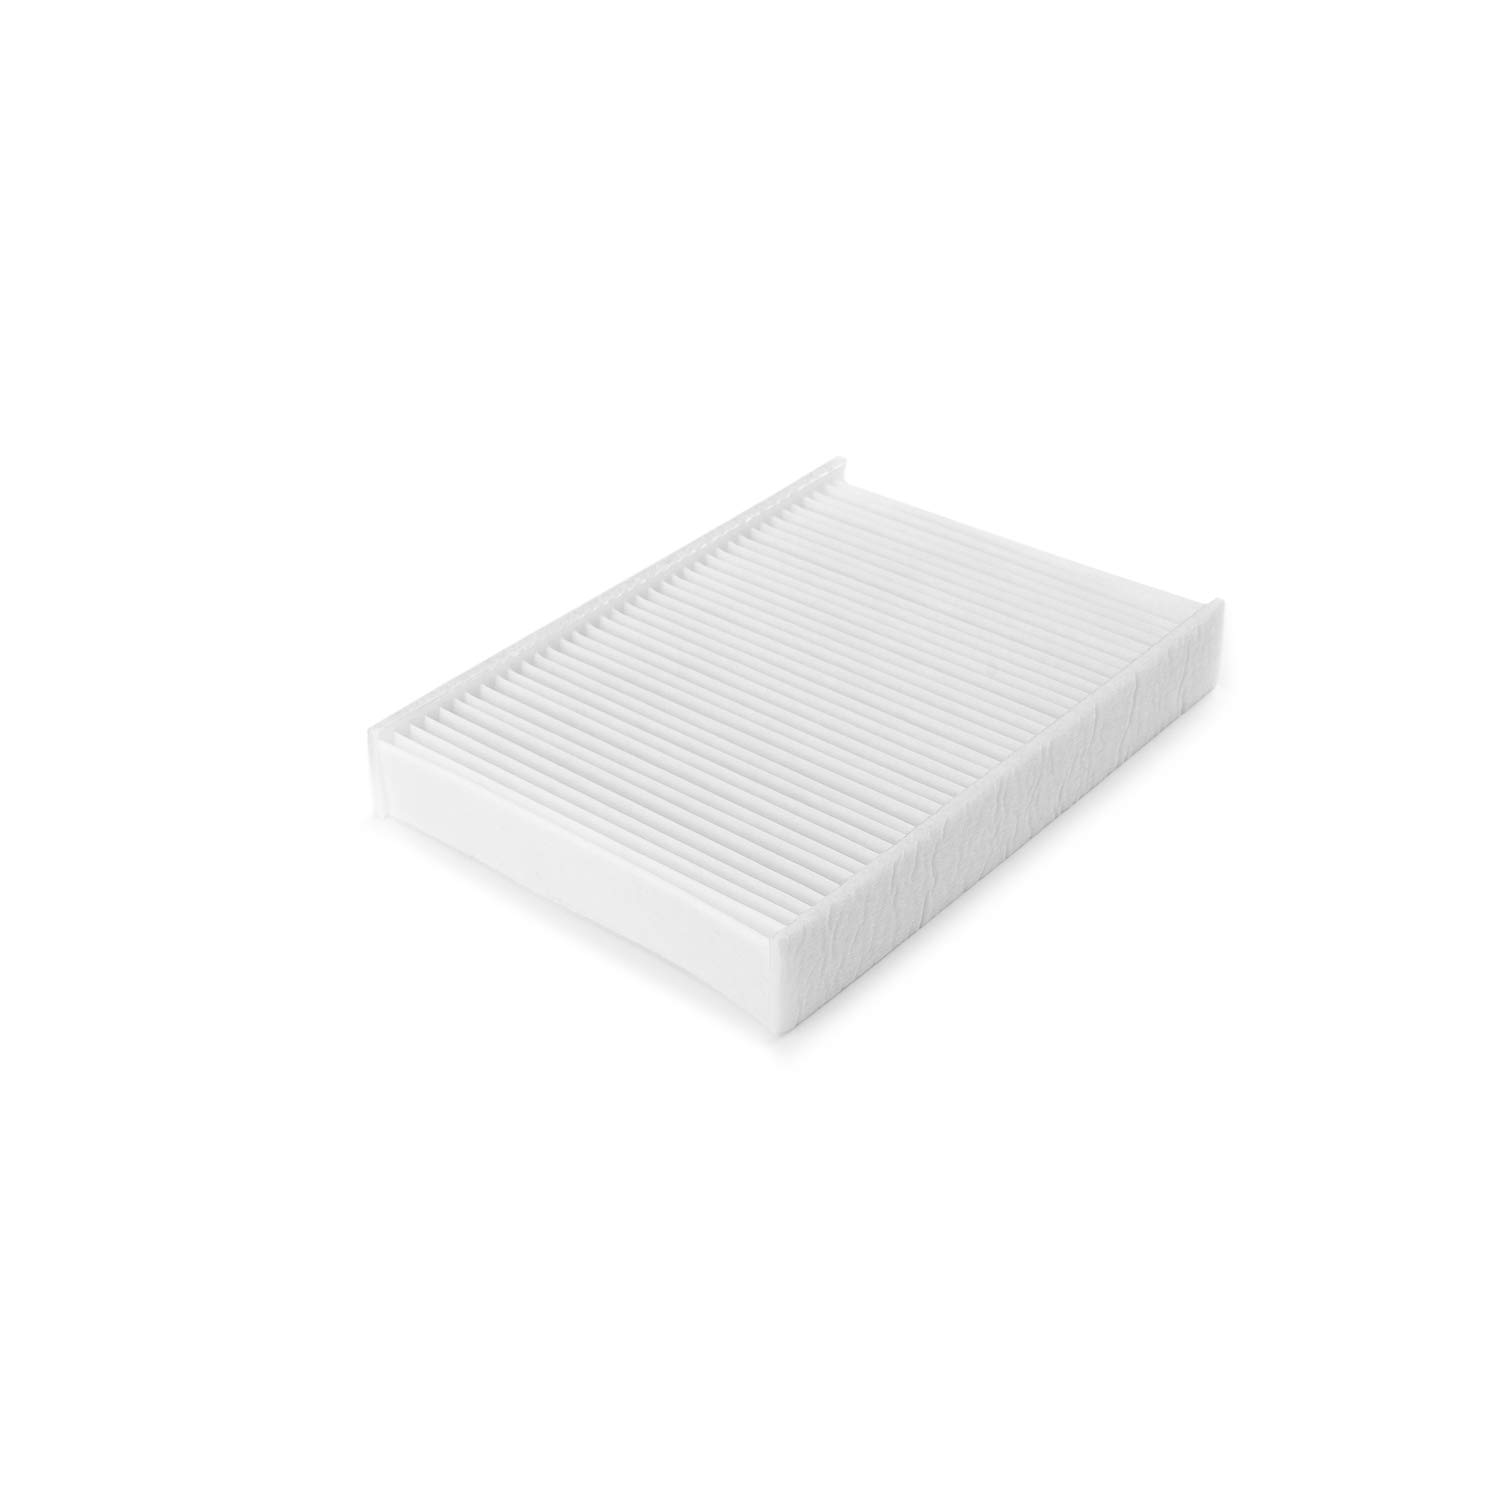 UFI Filters 53.060.00 Filtre DHabitacle